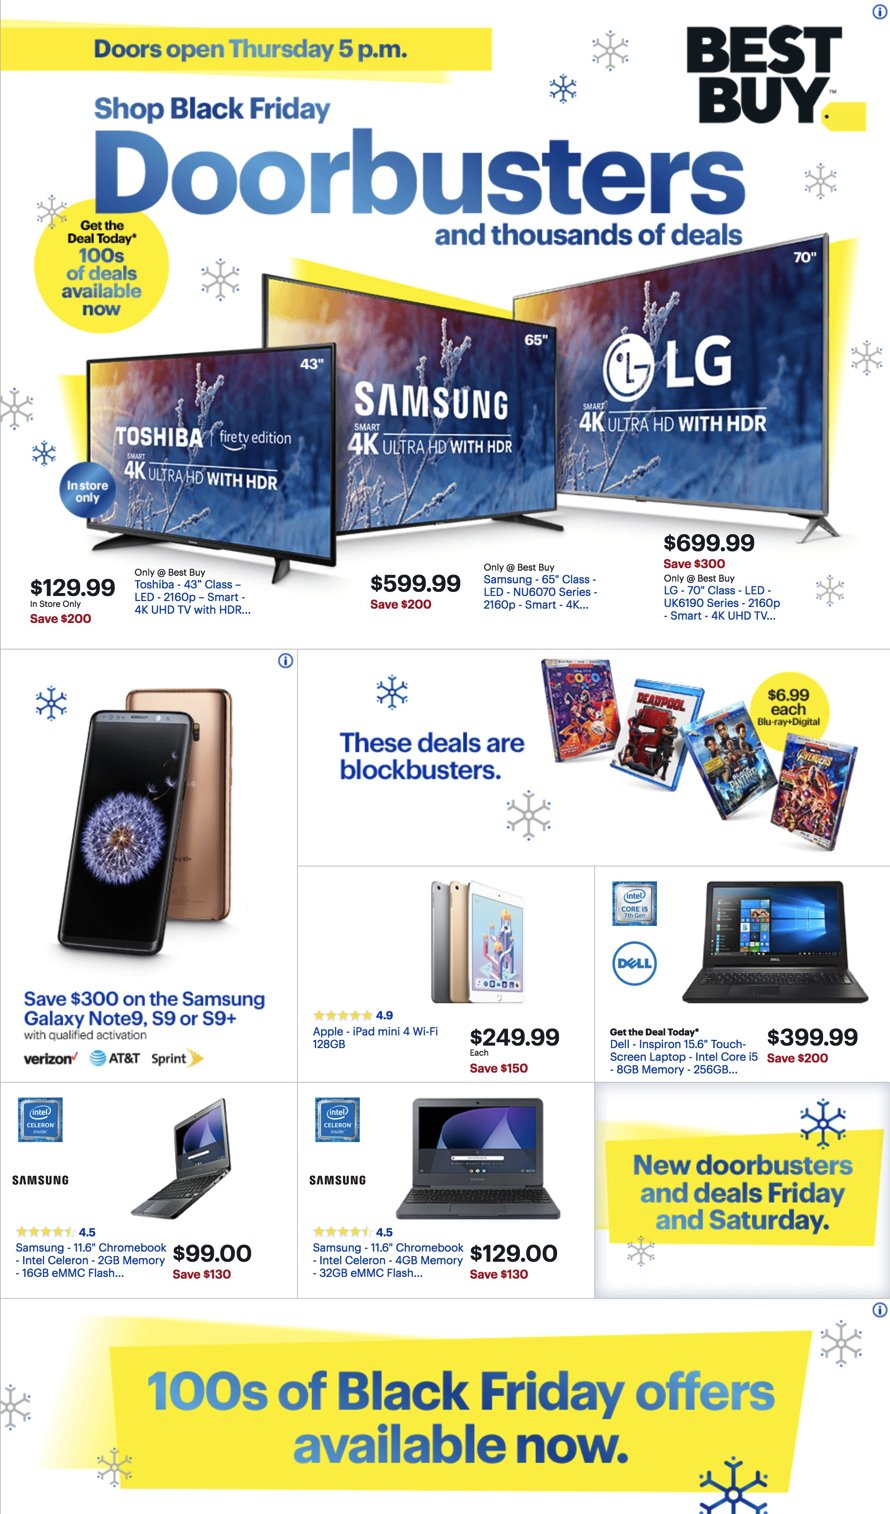 Best Buy Black Friday 2018 Ad, Deals and Sales - Savings com